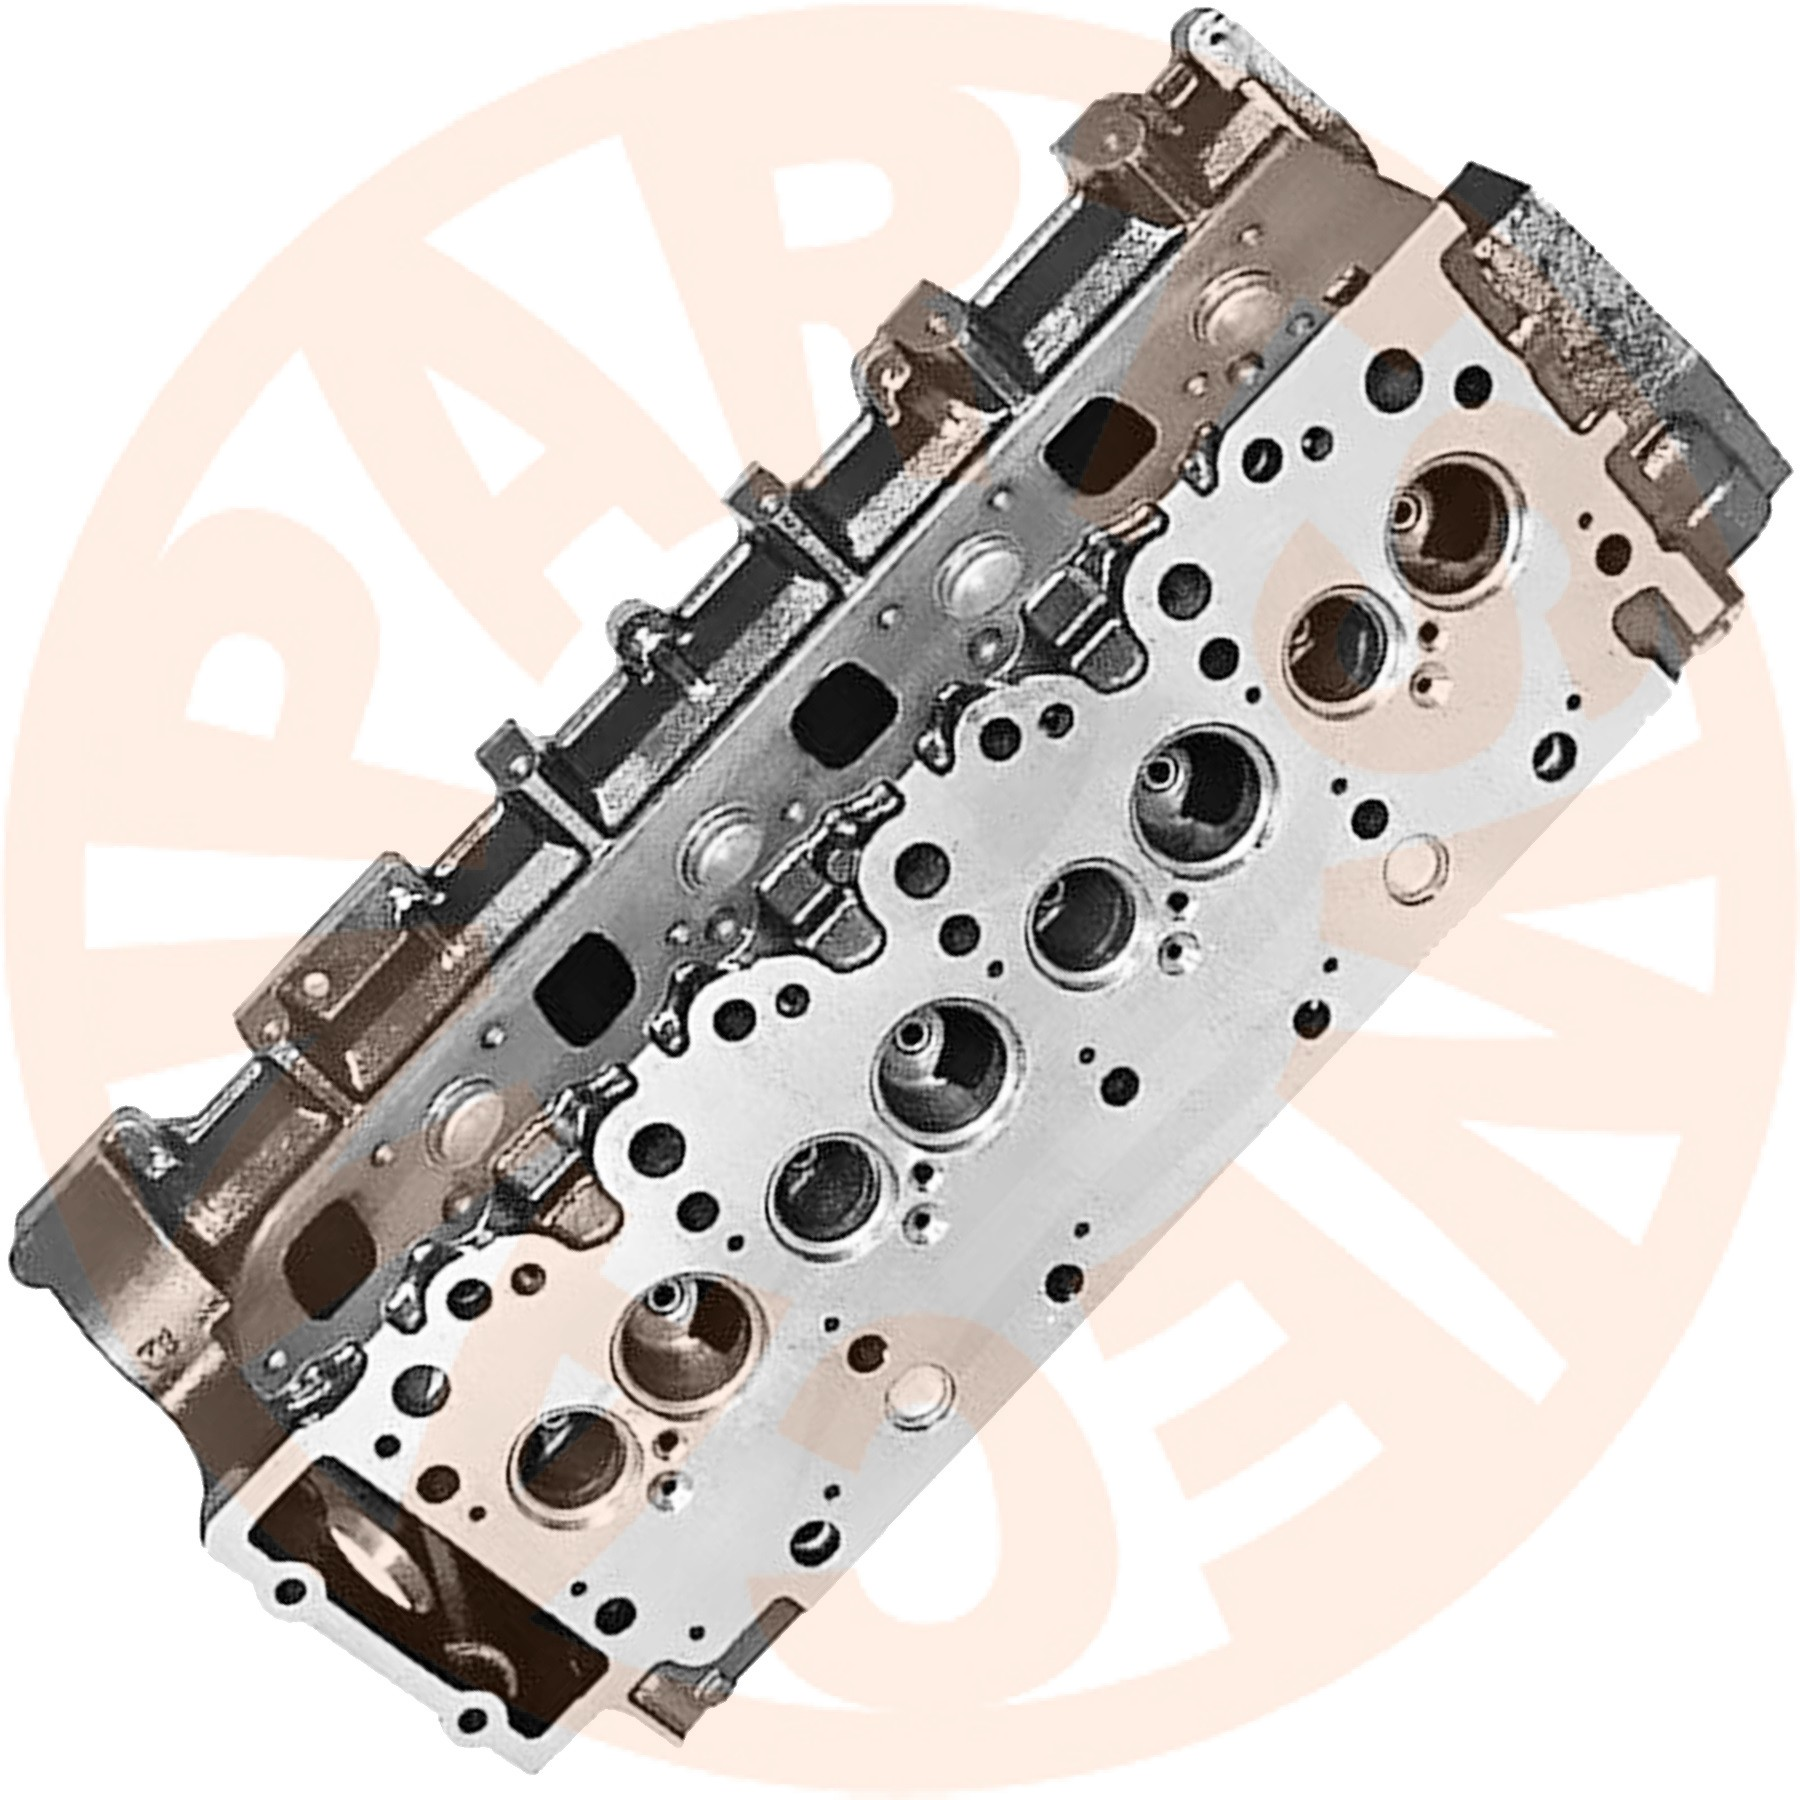 Cylinder head isuzu 4hg1 4hg1t engine truck aftermarket parts ebay cylinder head isuzu 4hg1 4hg1t engine truck aftermarket parts fandeluxe